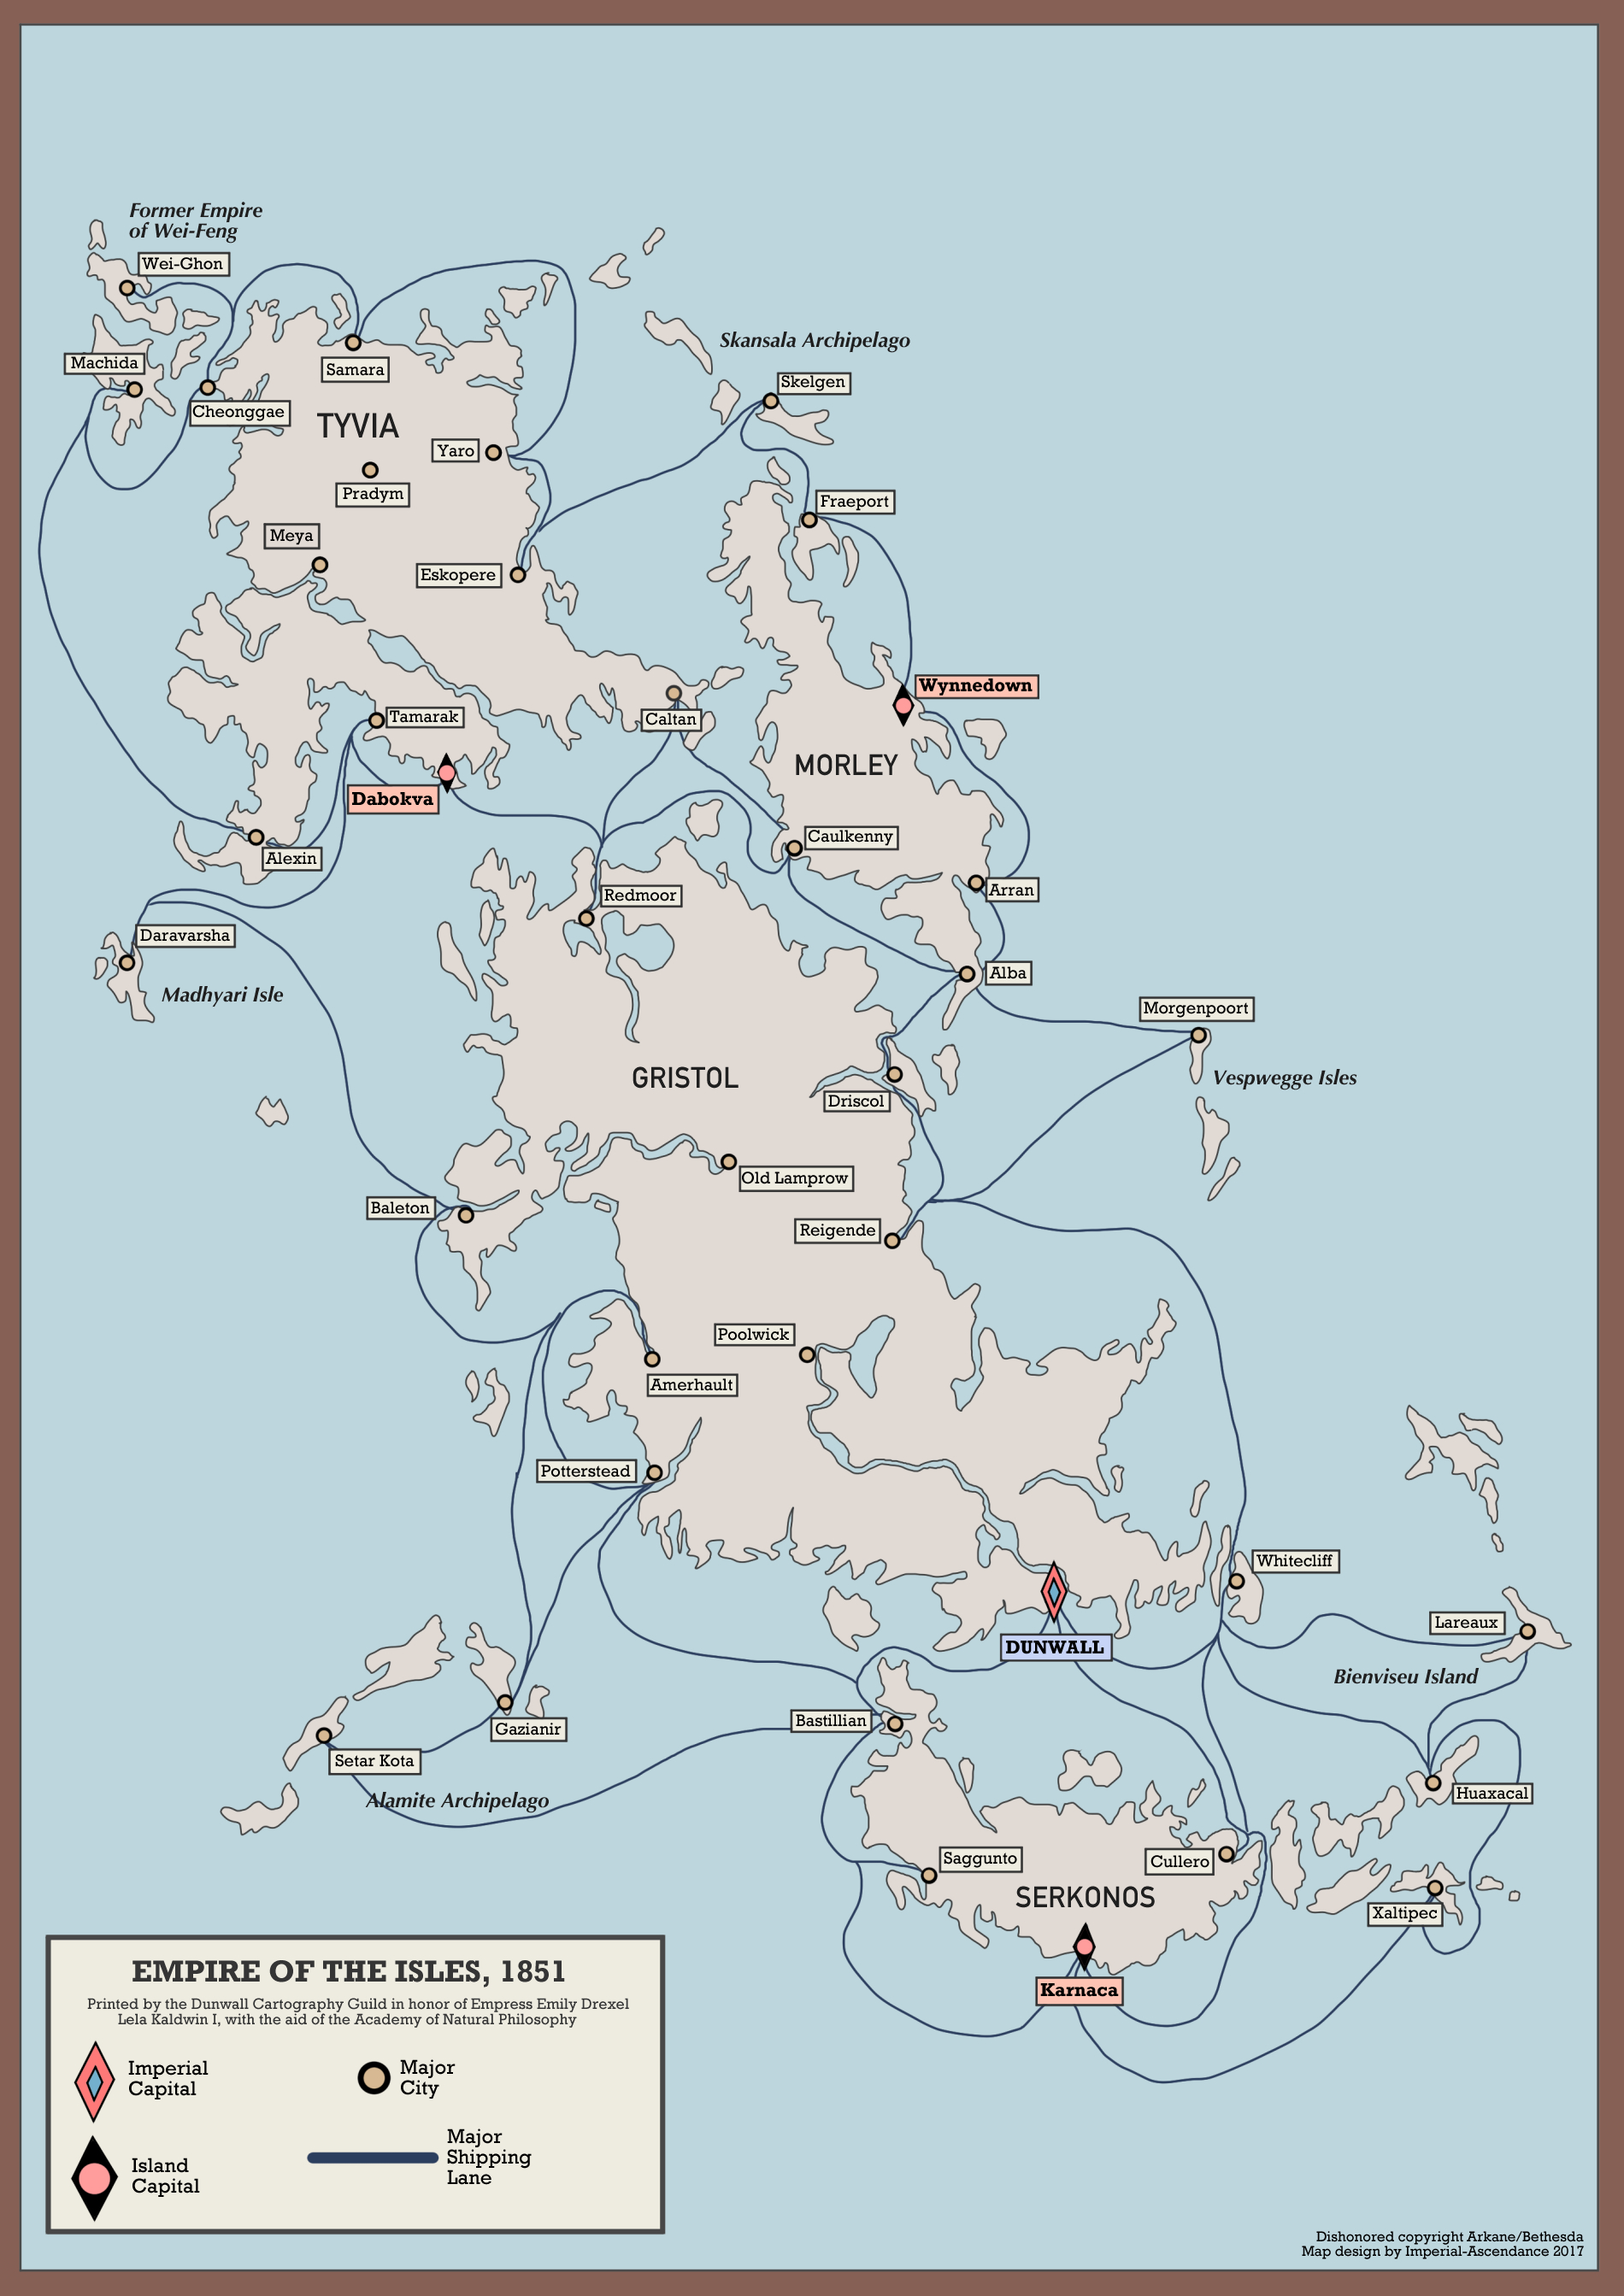 Empire Of The Isles 1851 Oc Based Off The Original Map But With